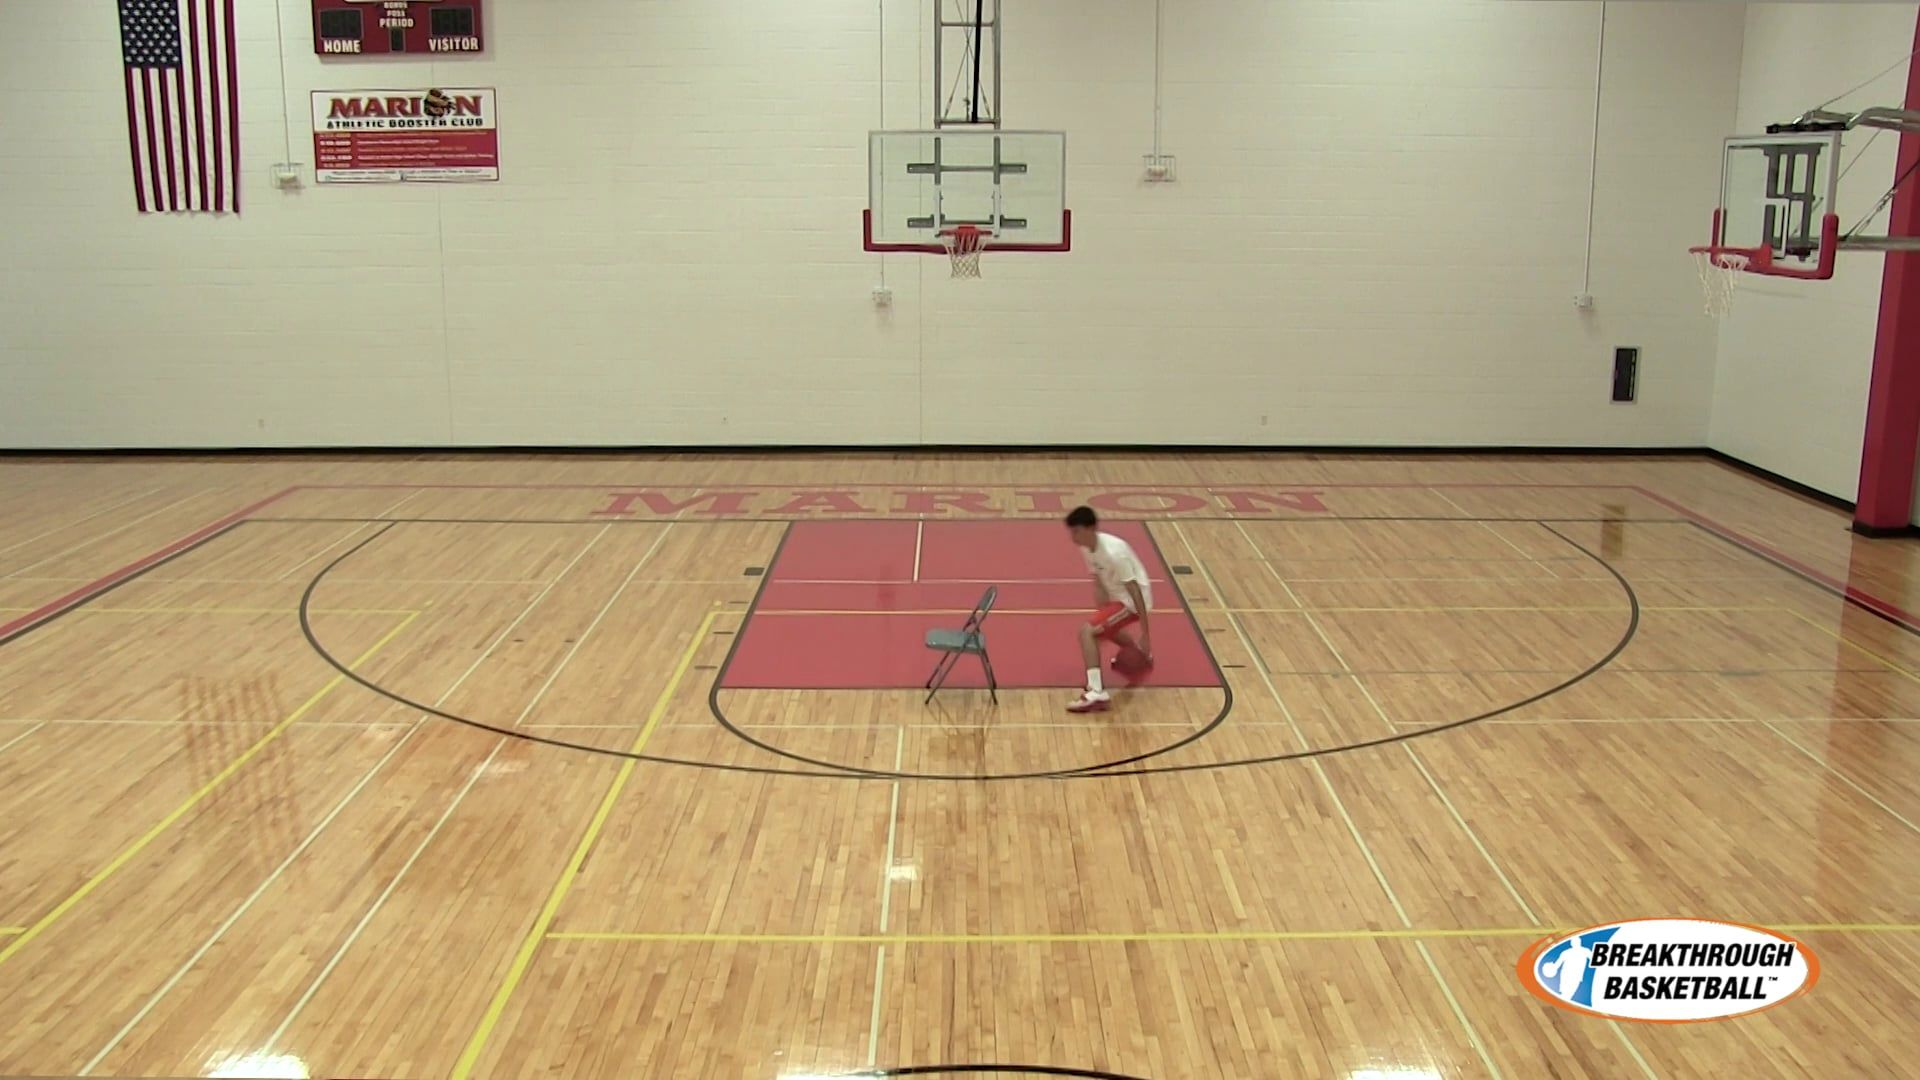 Dribble Moves At Chair Cross, Through Legs (Left